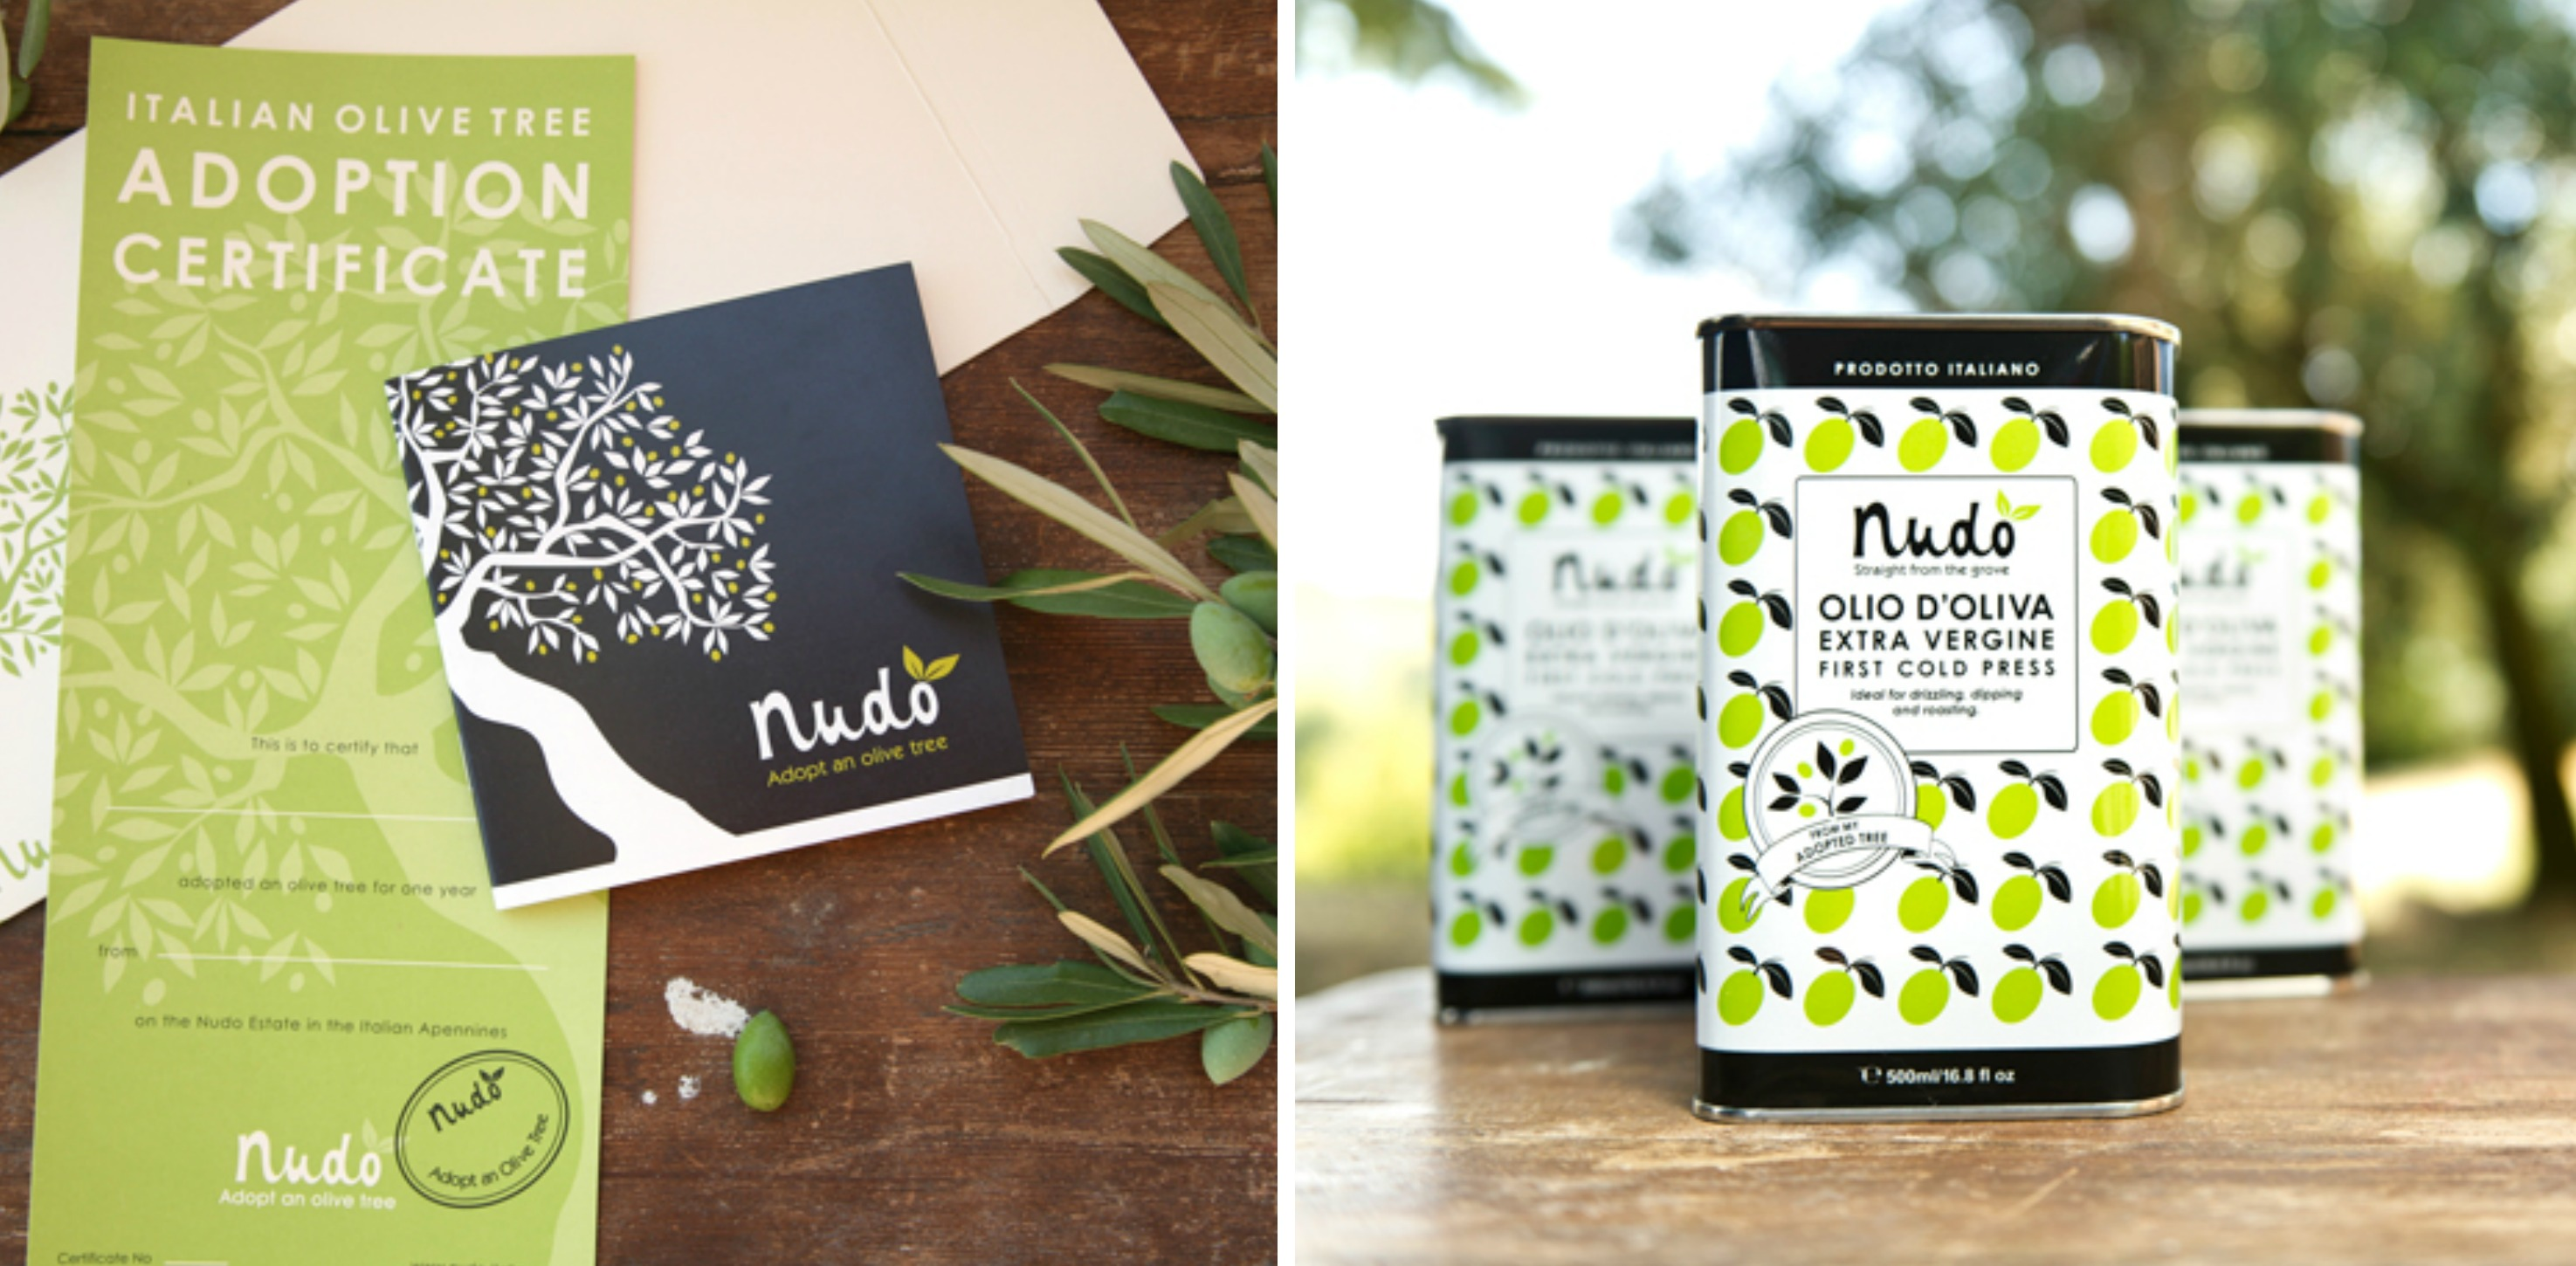 Nudo olive oil, adopt an olive tree